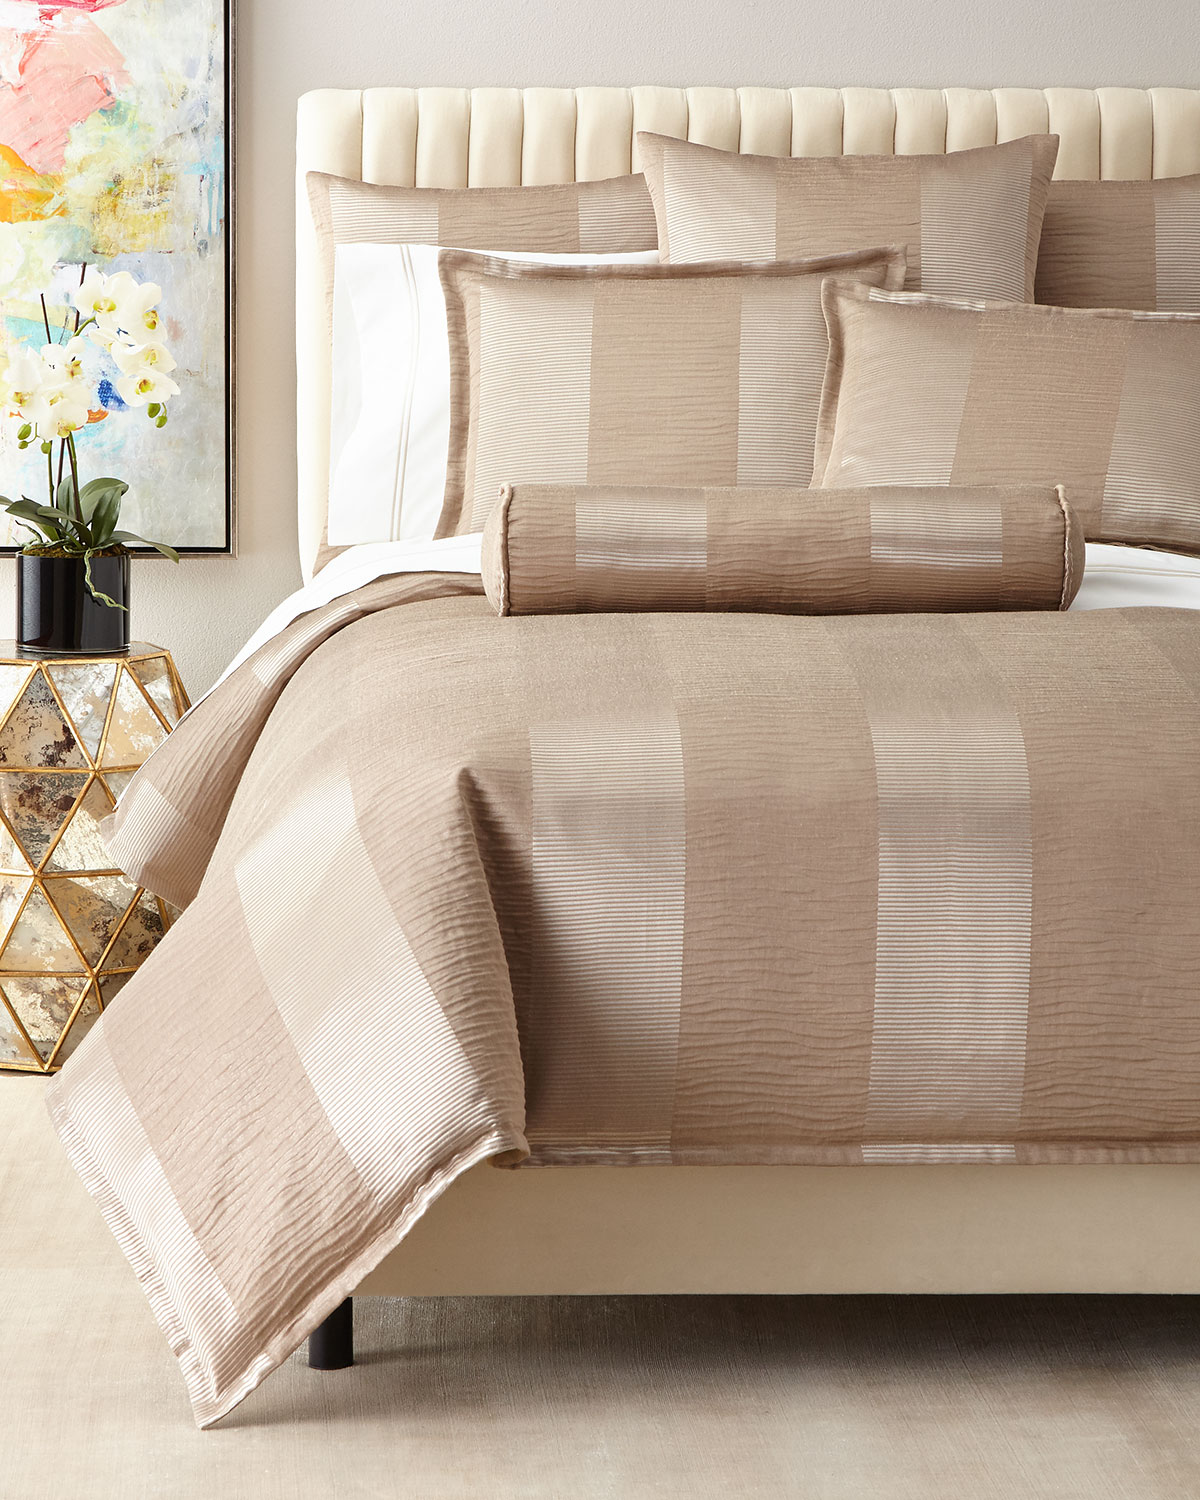 King Soprano 420 Thread Count Fitted Sheet